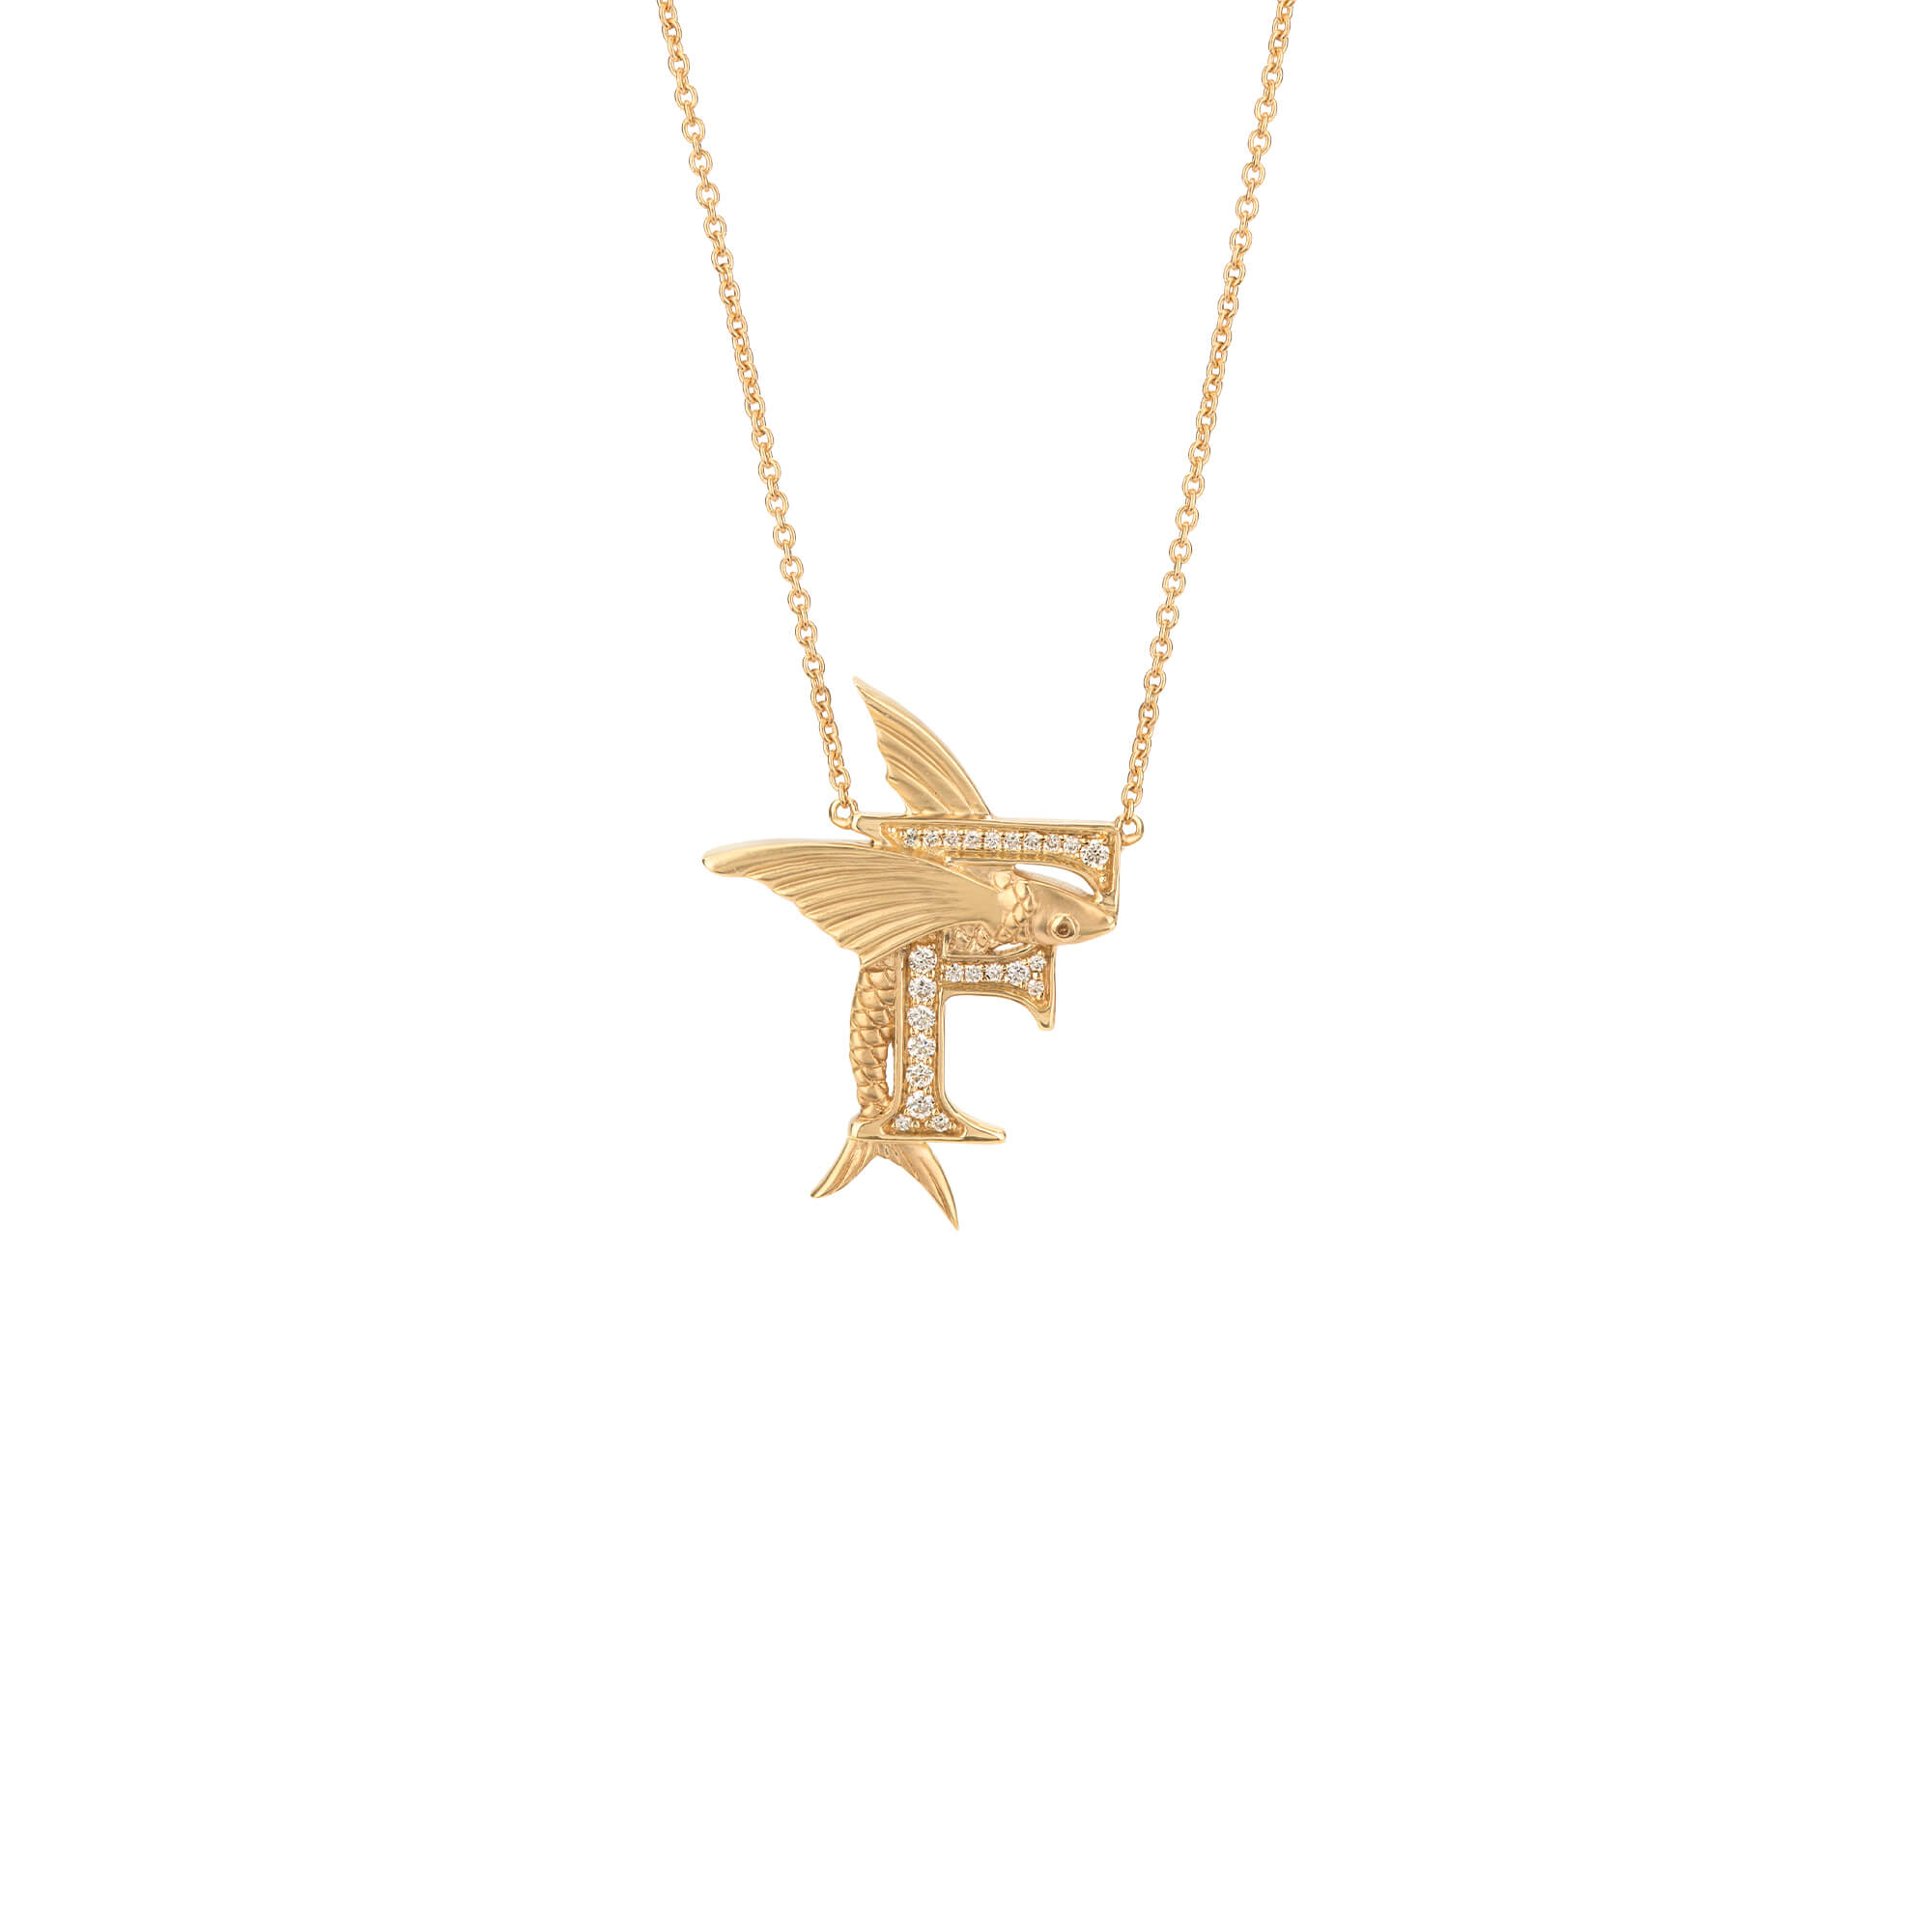 F is for Flying Fish Gold Necklace | Fish Tales